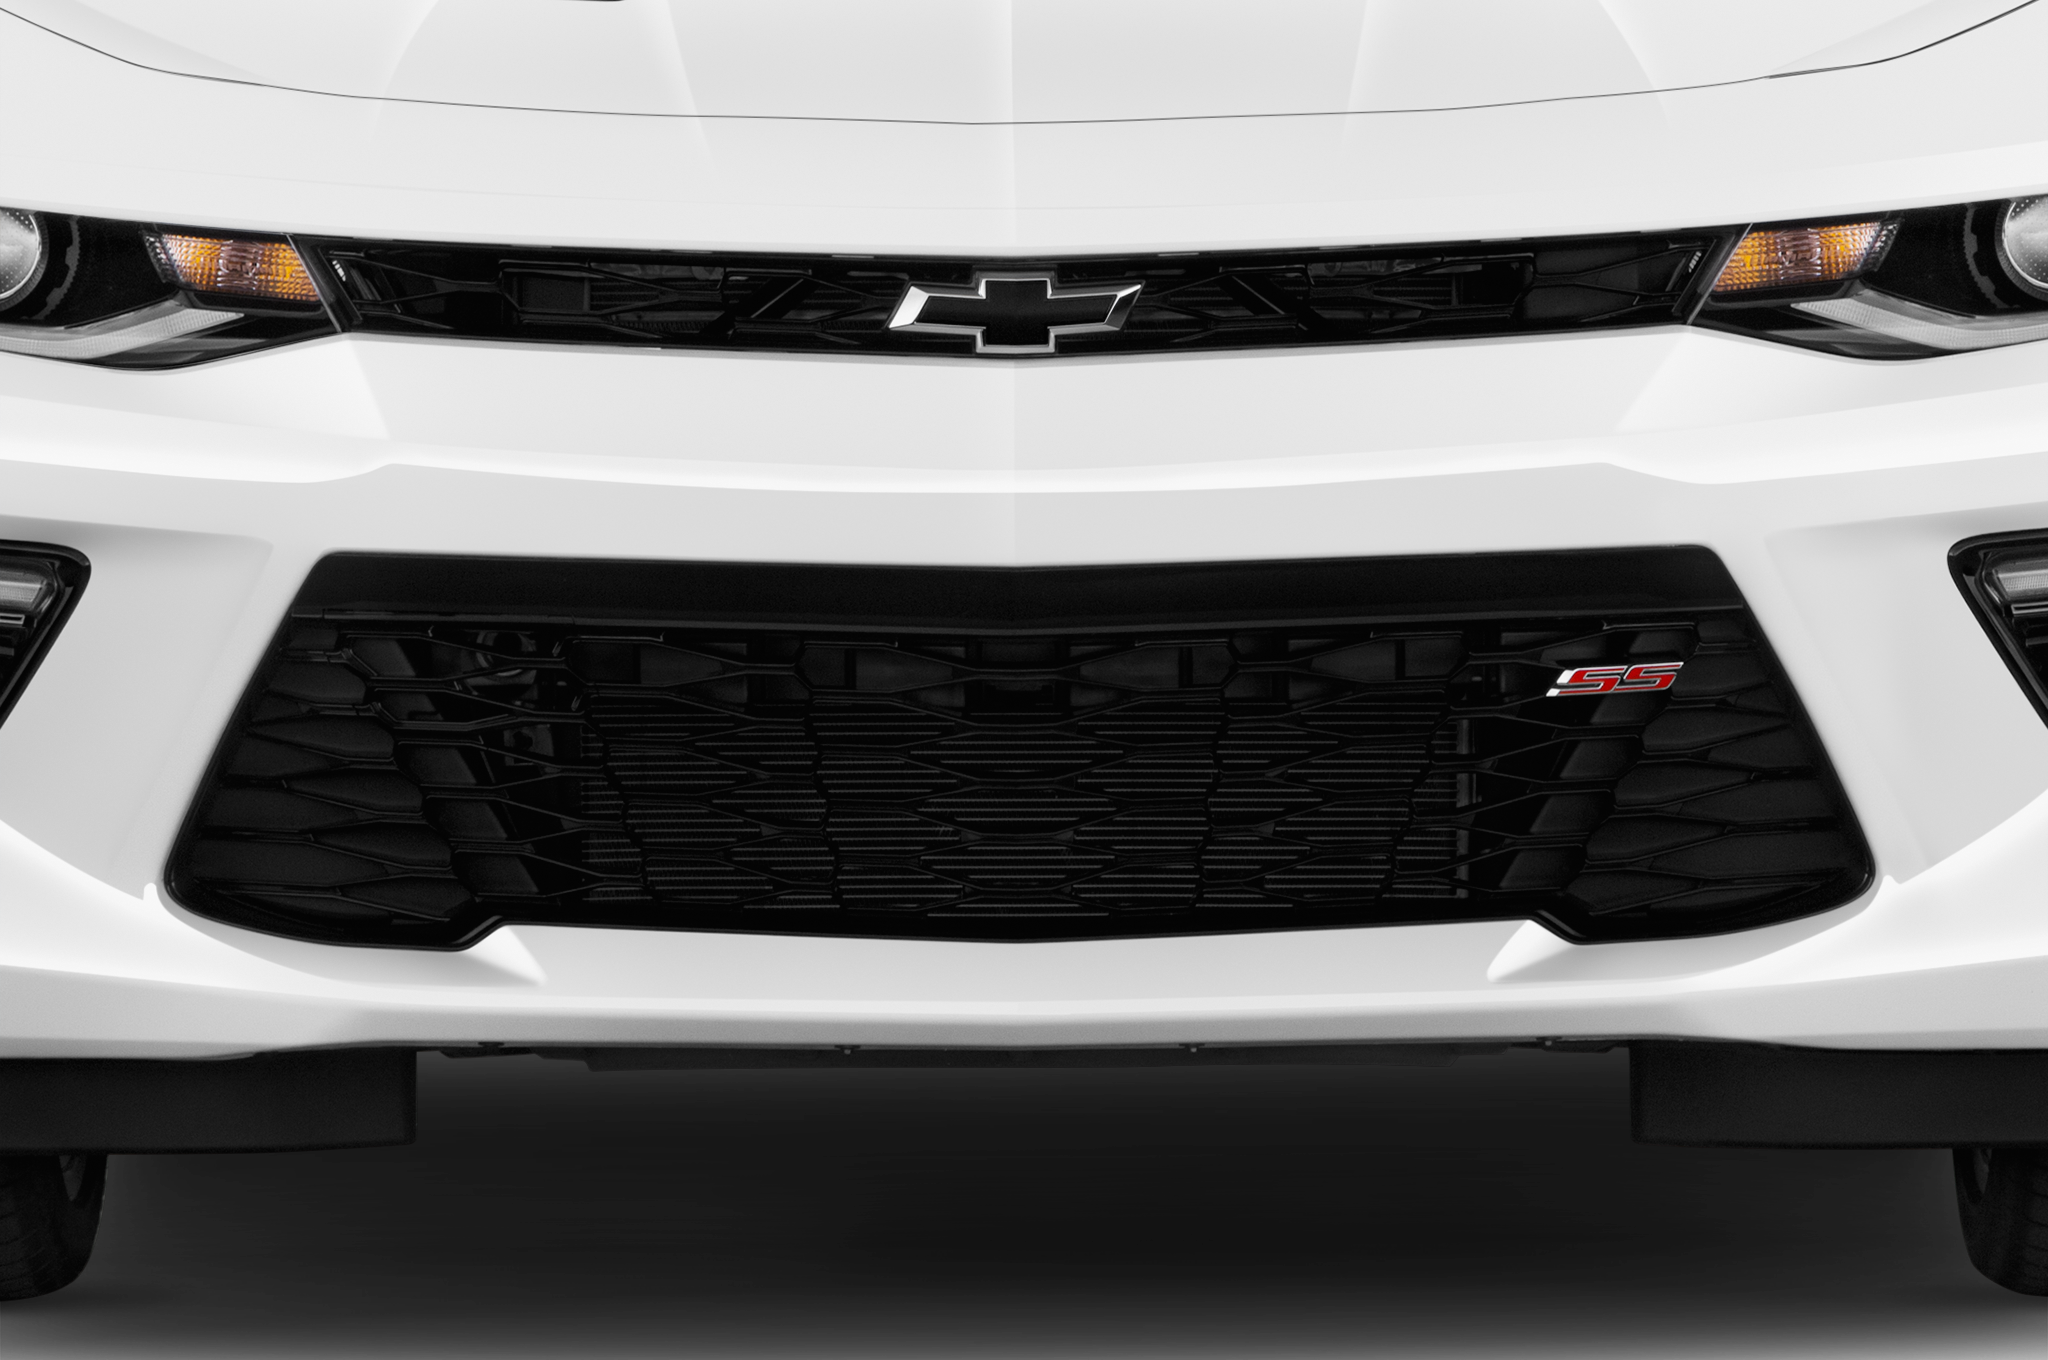 2017 Chevrolet Camaro Zl1 Convertible Debuts At New York Show F1 Rocket Engine Diagram 47 196